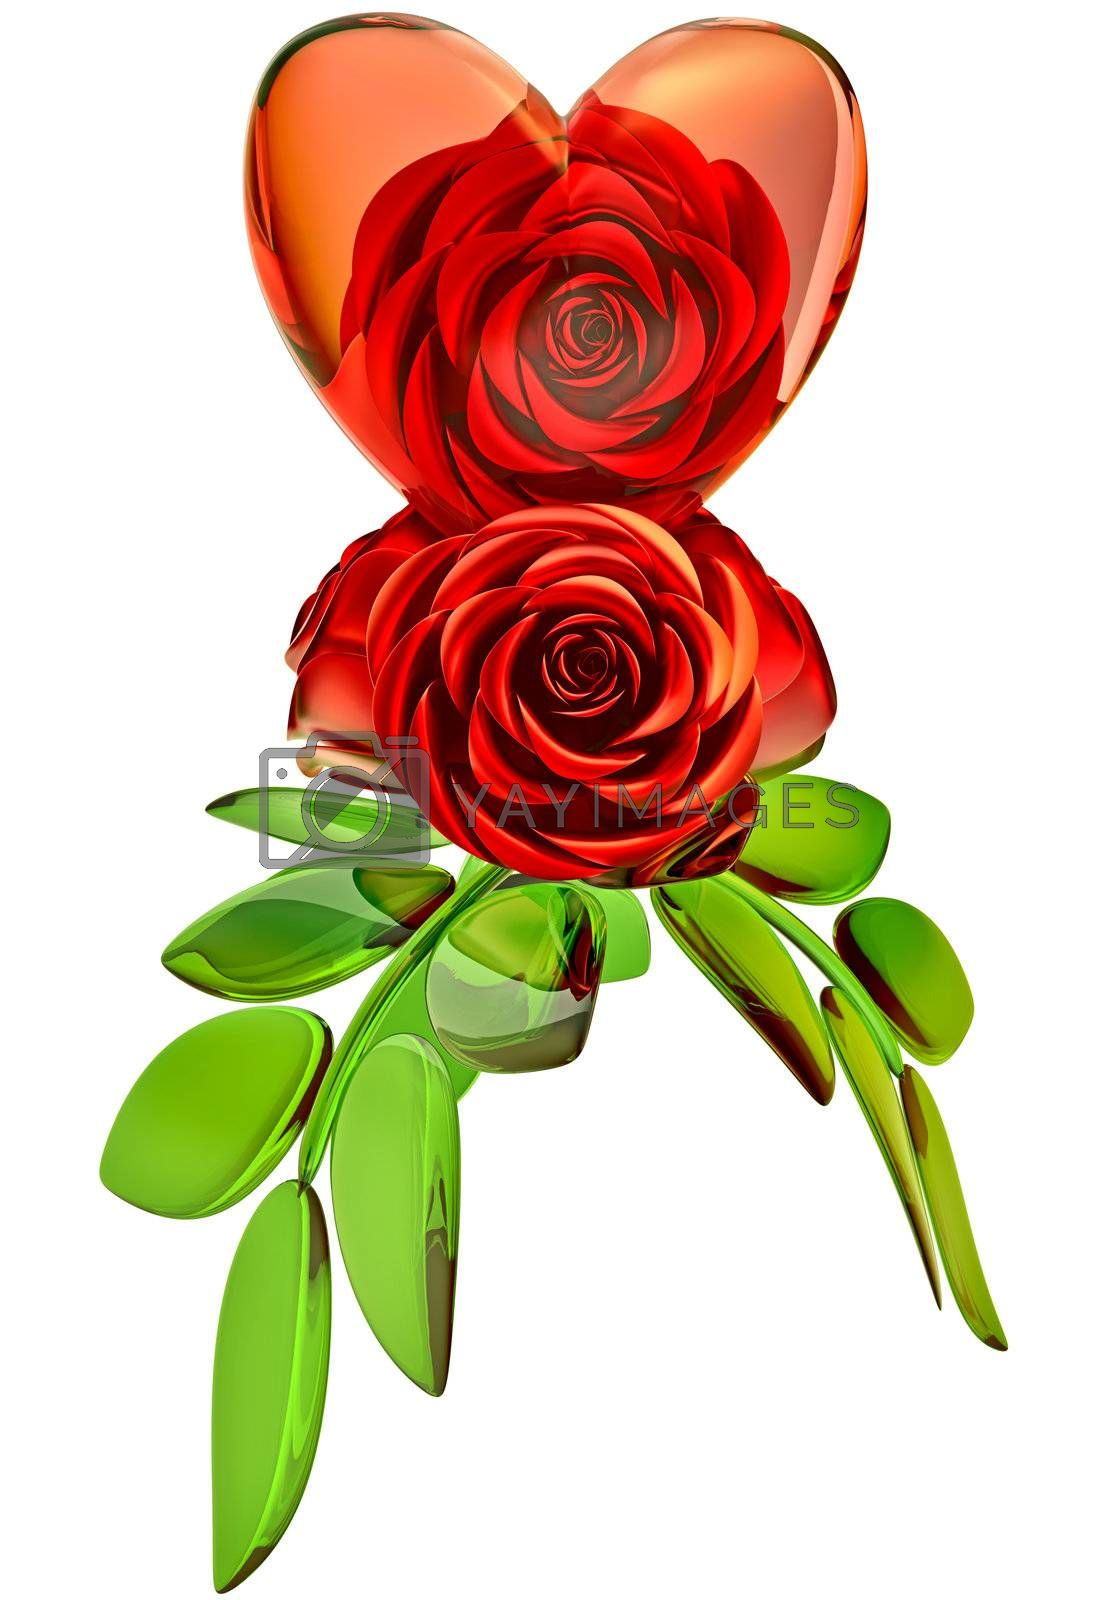 beautiful red roses with green leafs and glass heart as decoration for celebration of Valentine's Day